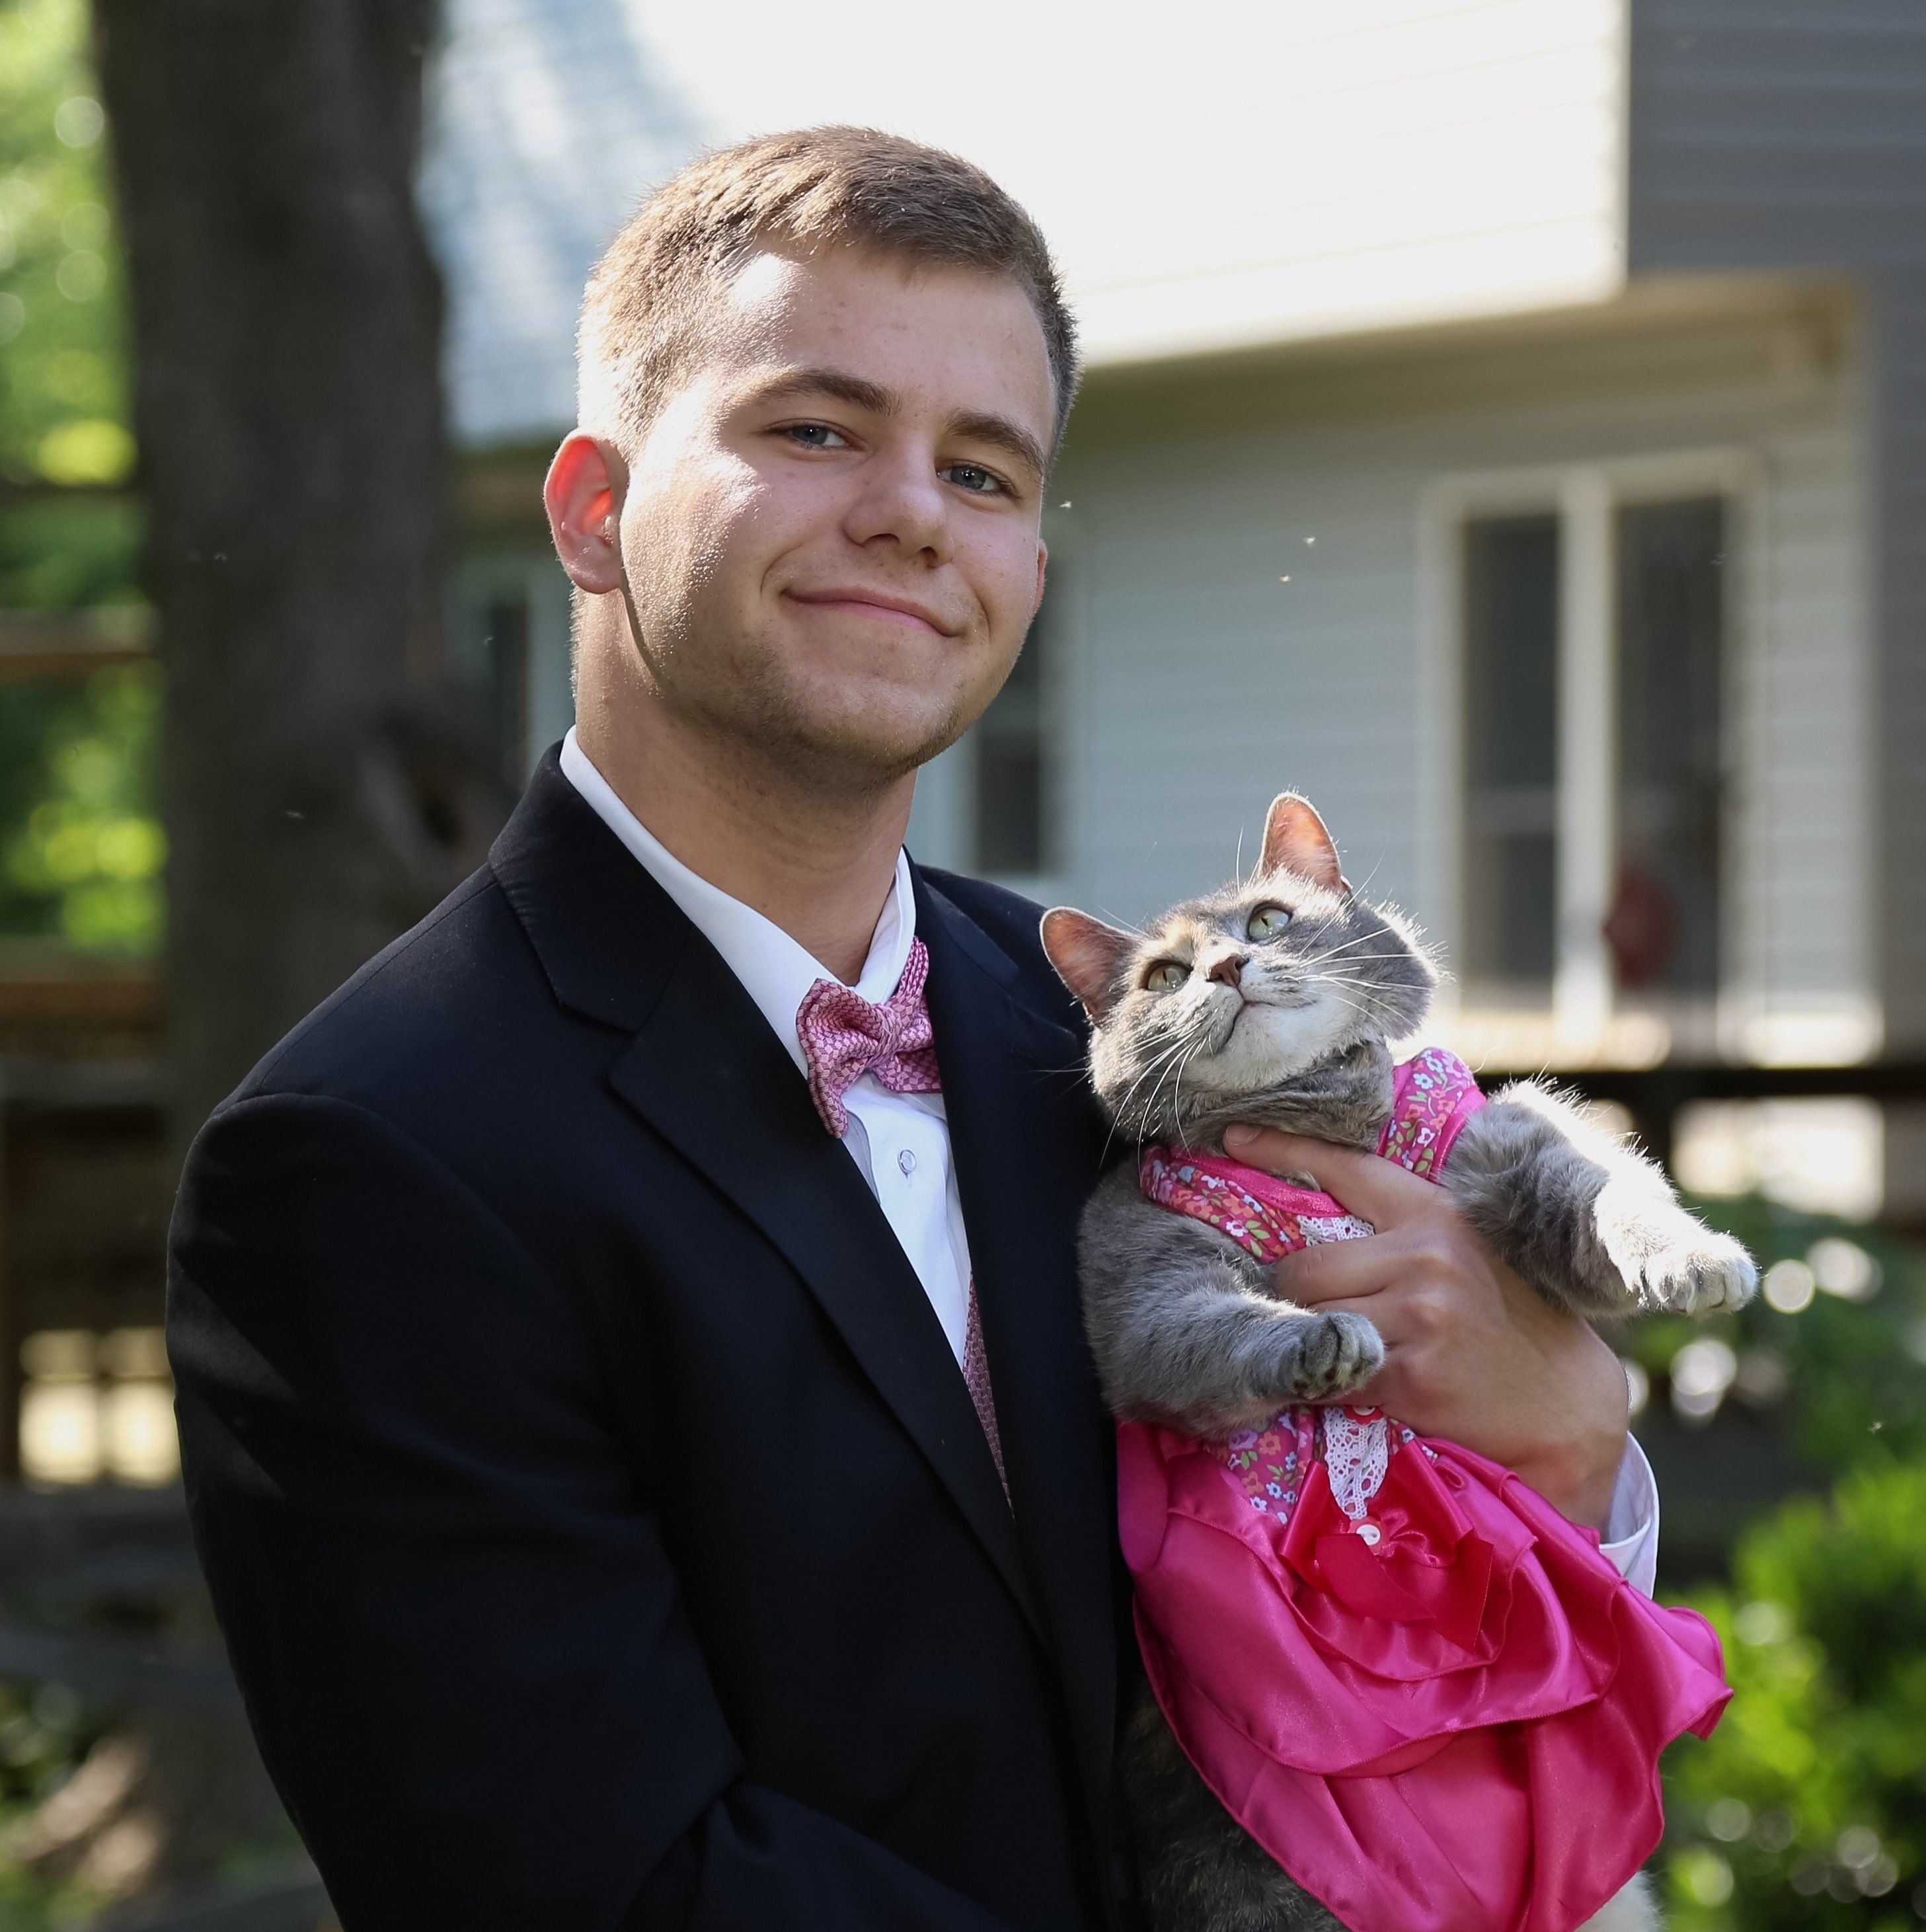 This Guy Took His Cat To Prom When He Couldn't Find A